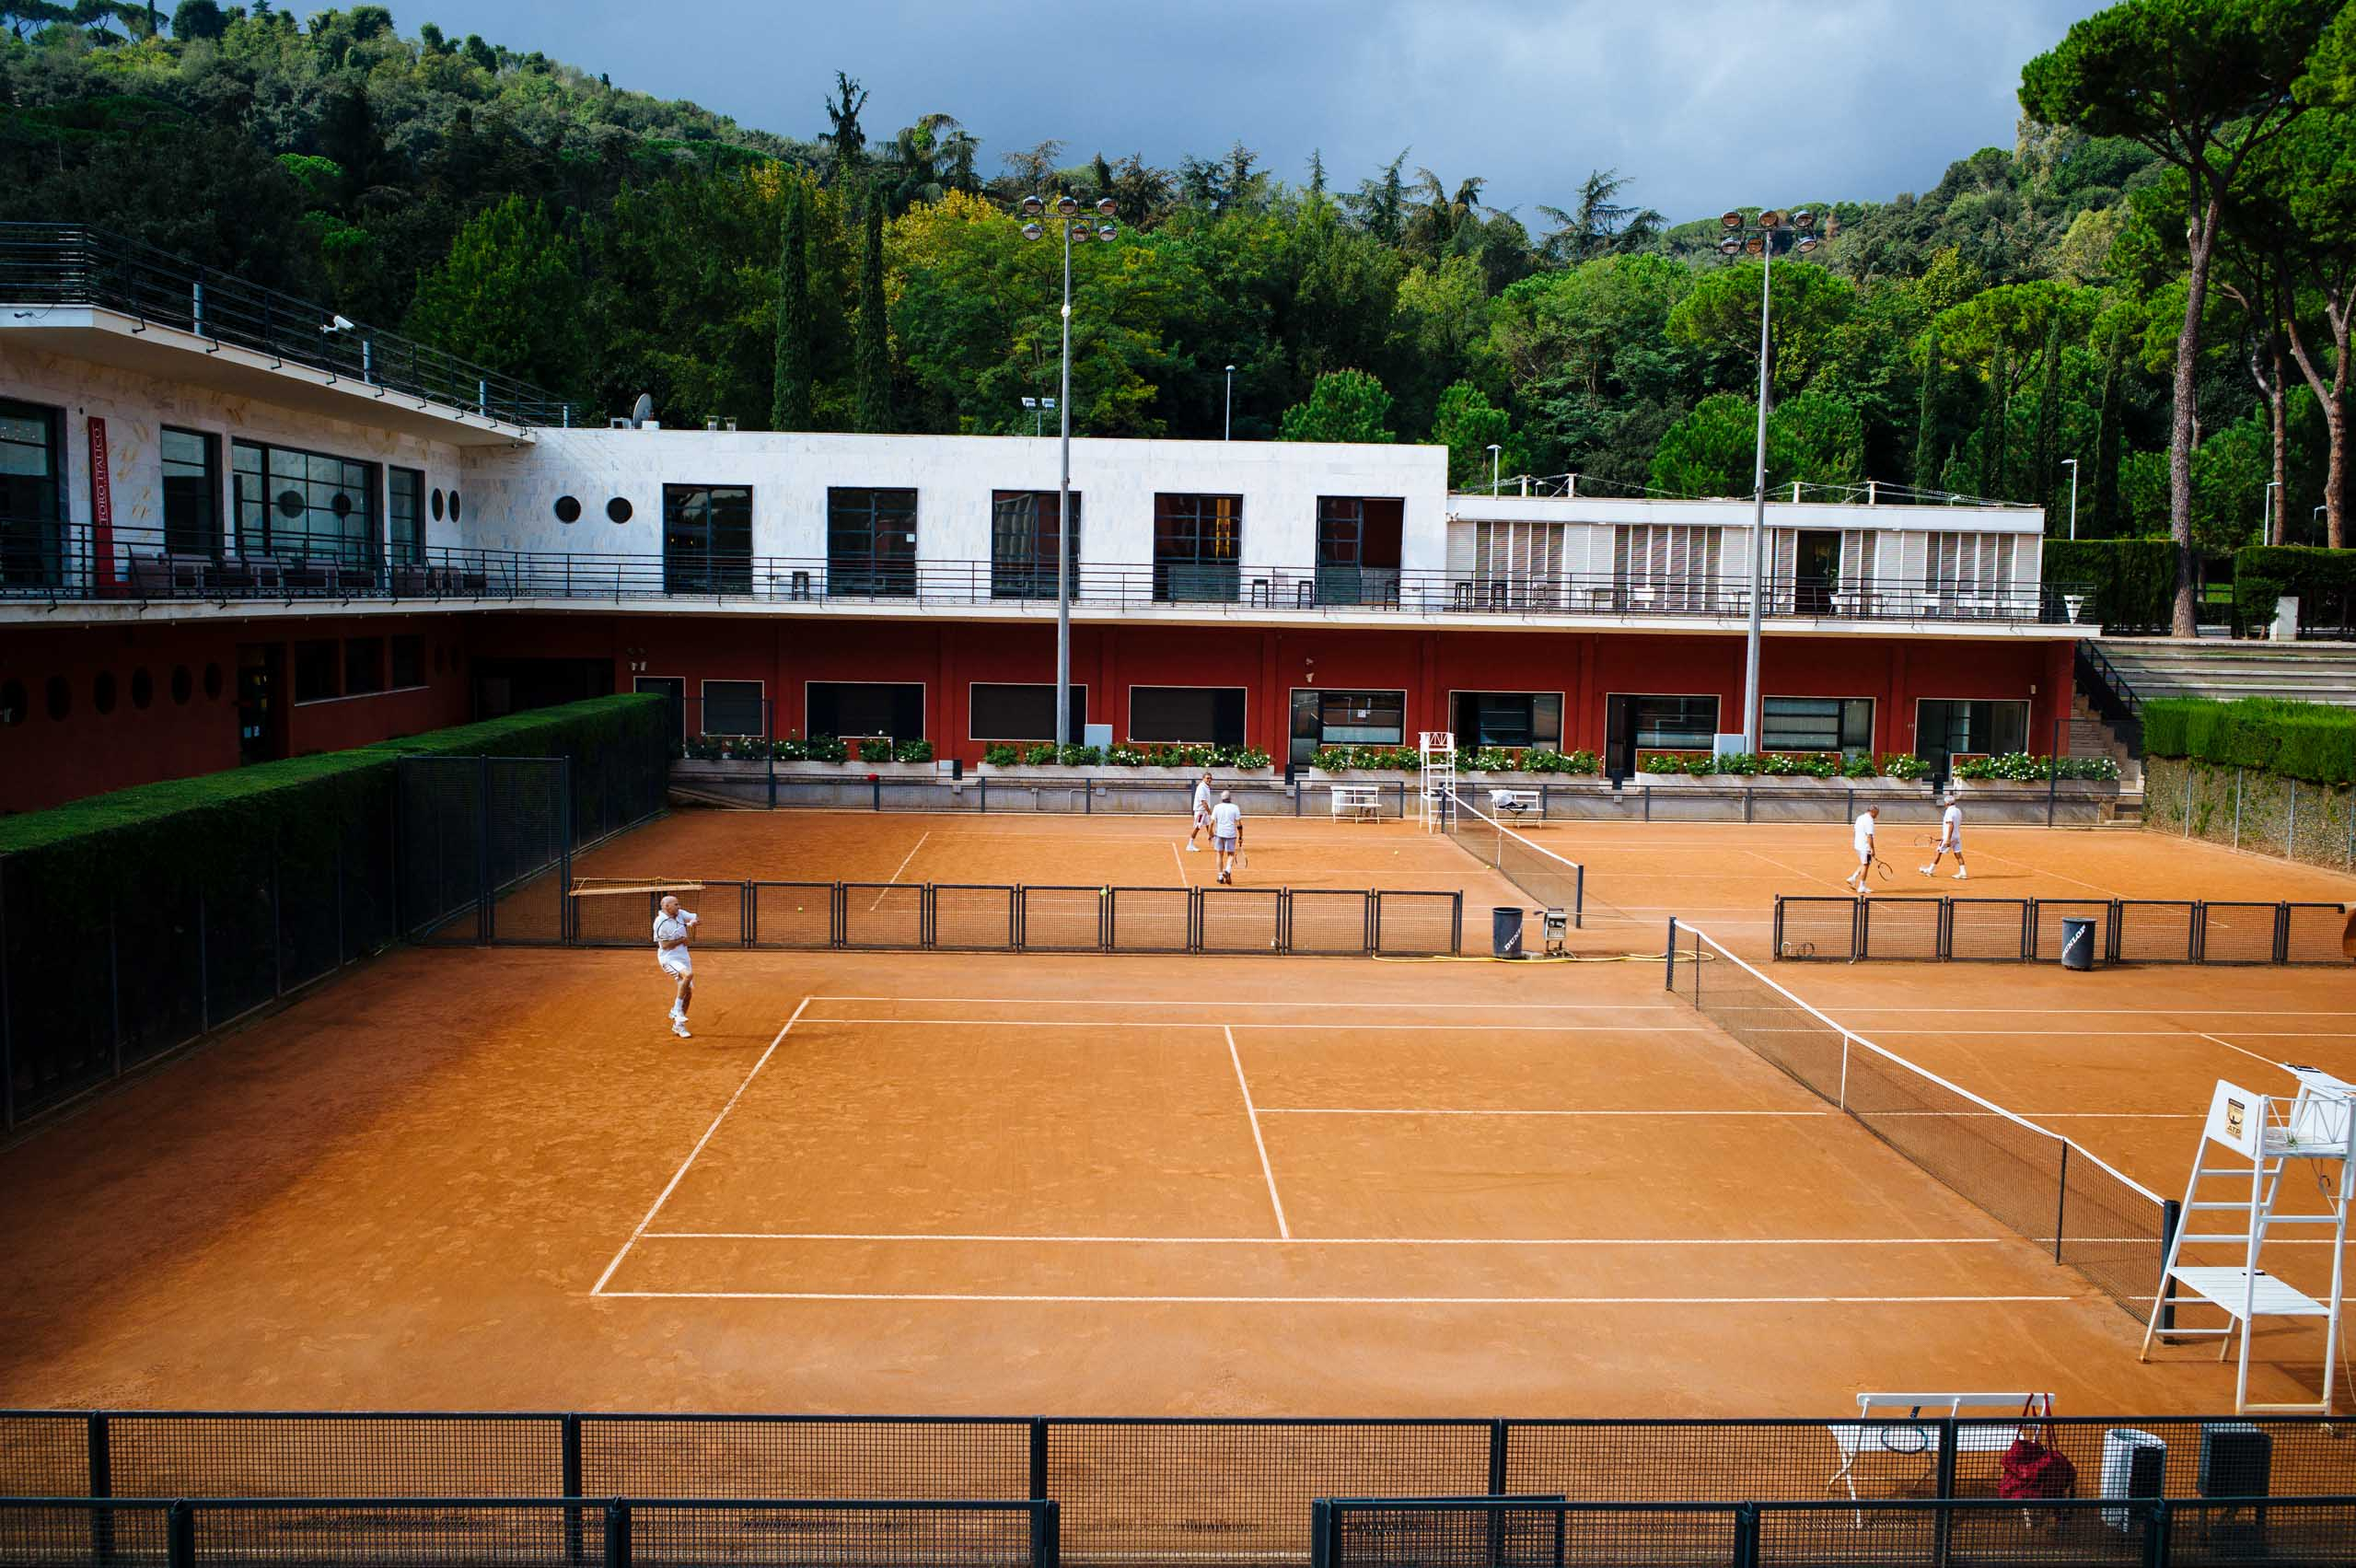 A private tennis club that was part of the Foro Italico sports complex in Rome, host of the 1960 Summer Olympics, photographed in June 2012.